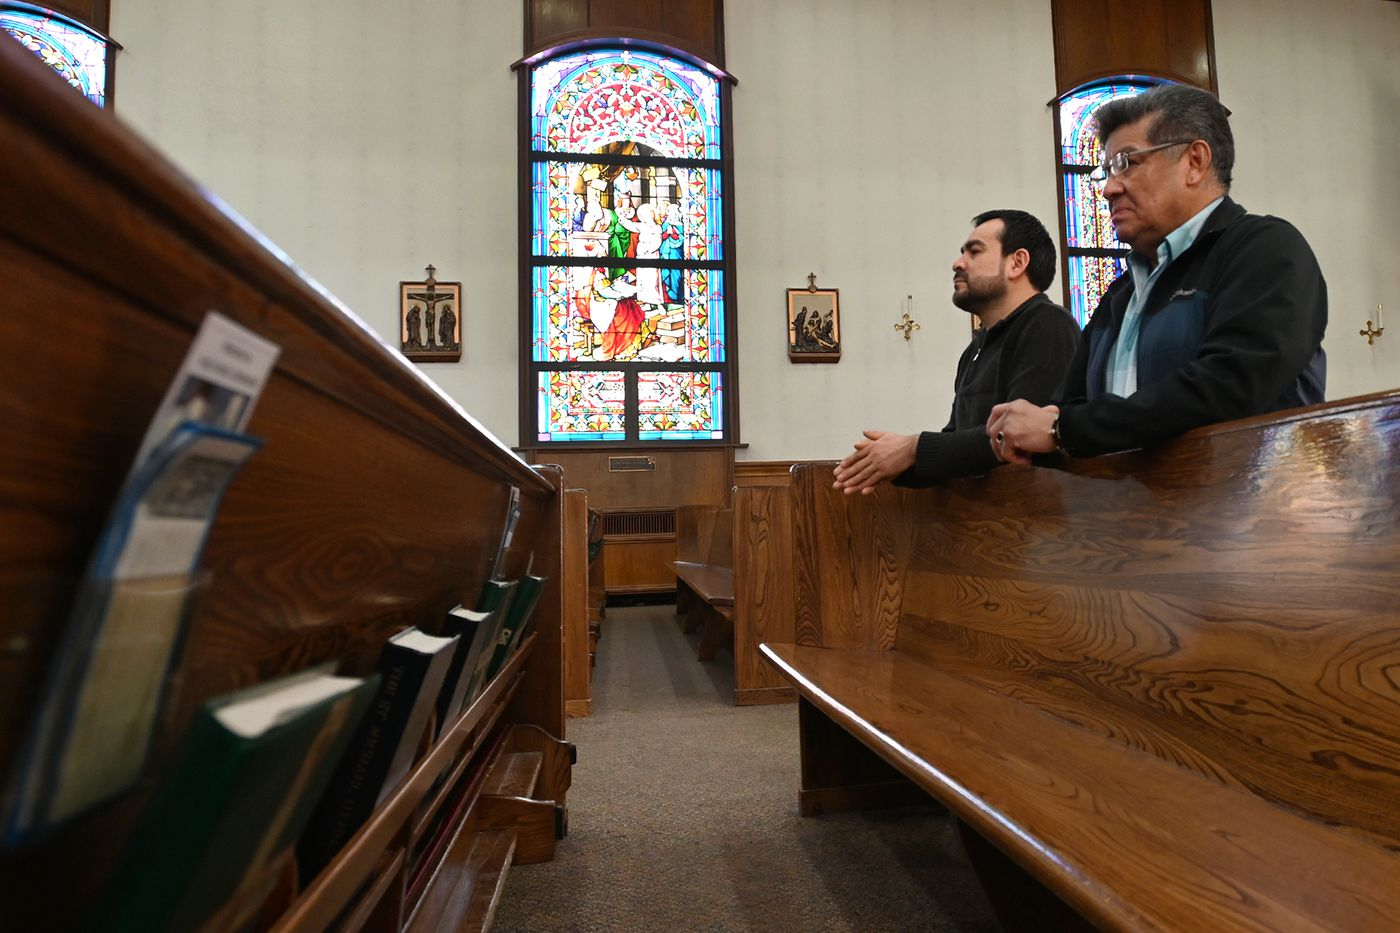 MARCH 15. Alfonzo Seqouiano and Eduardo Rocha kneel while praying at Holy Family Cathedral in downtown Anchorage. Rocha said, 'I prayed for people all around the world with the coronavirus. ' According to a message on the front door, all public liturgies, including masses, have been suspended until Friday, March 27, 'as a precaution in preventing the spread of COVID-19 ' The cathedral is open for private prayer. (Bill Roth / ADN)